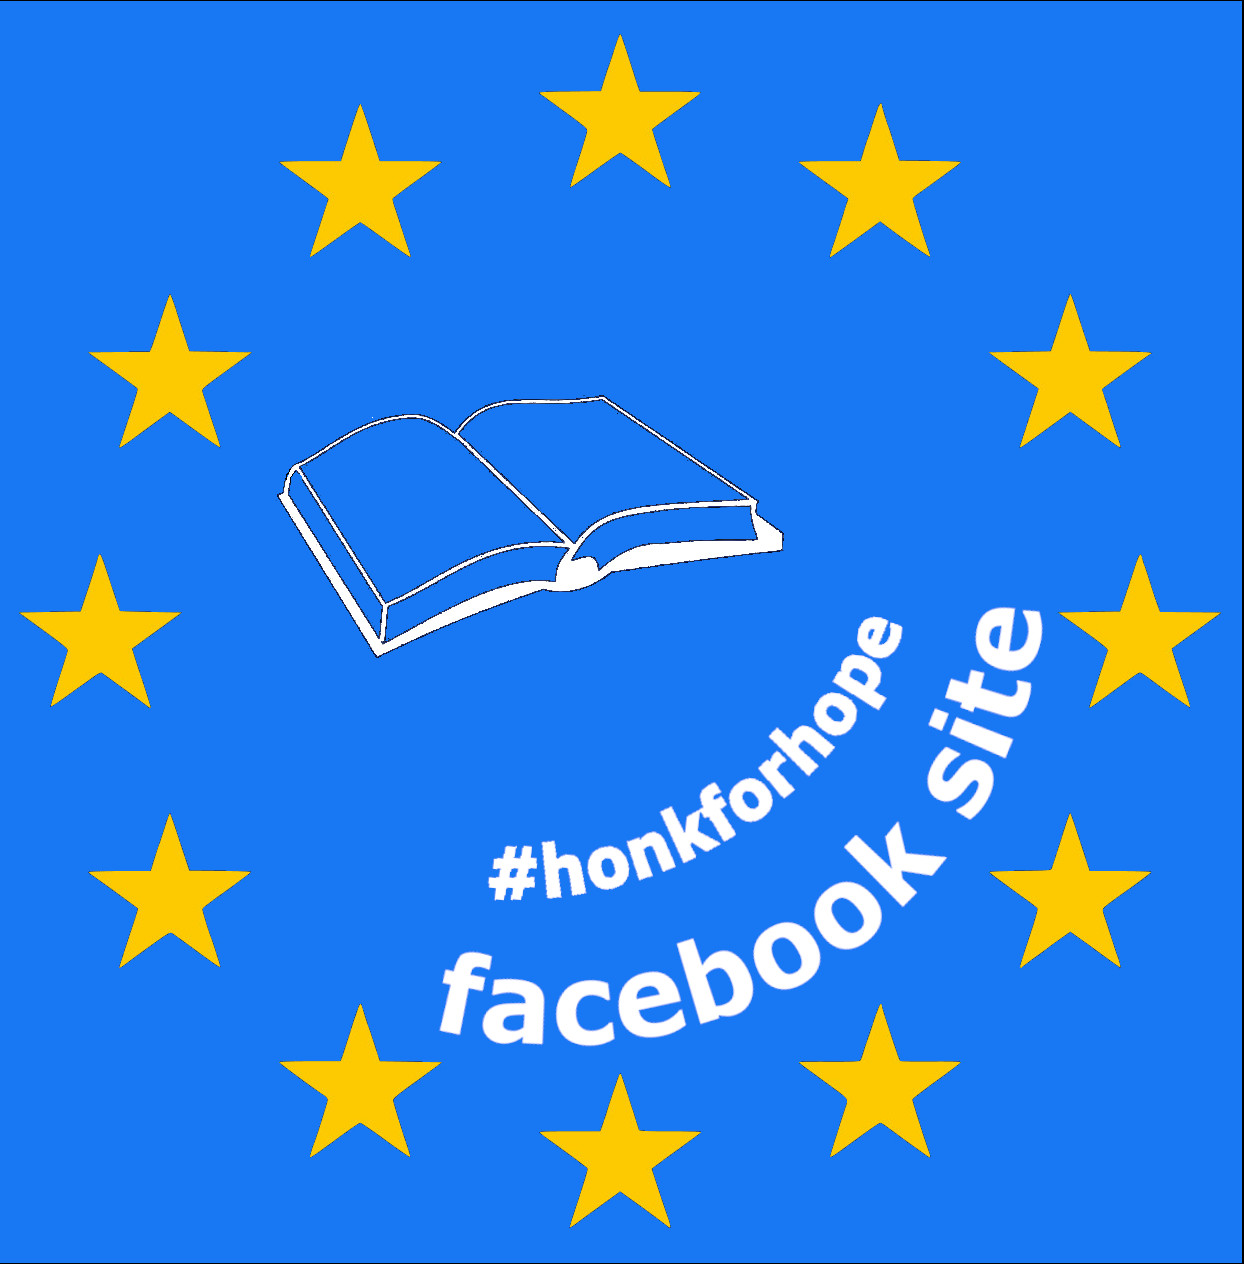 facebook site of motorcoach travel association #honkforhope